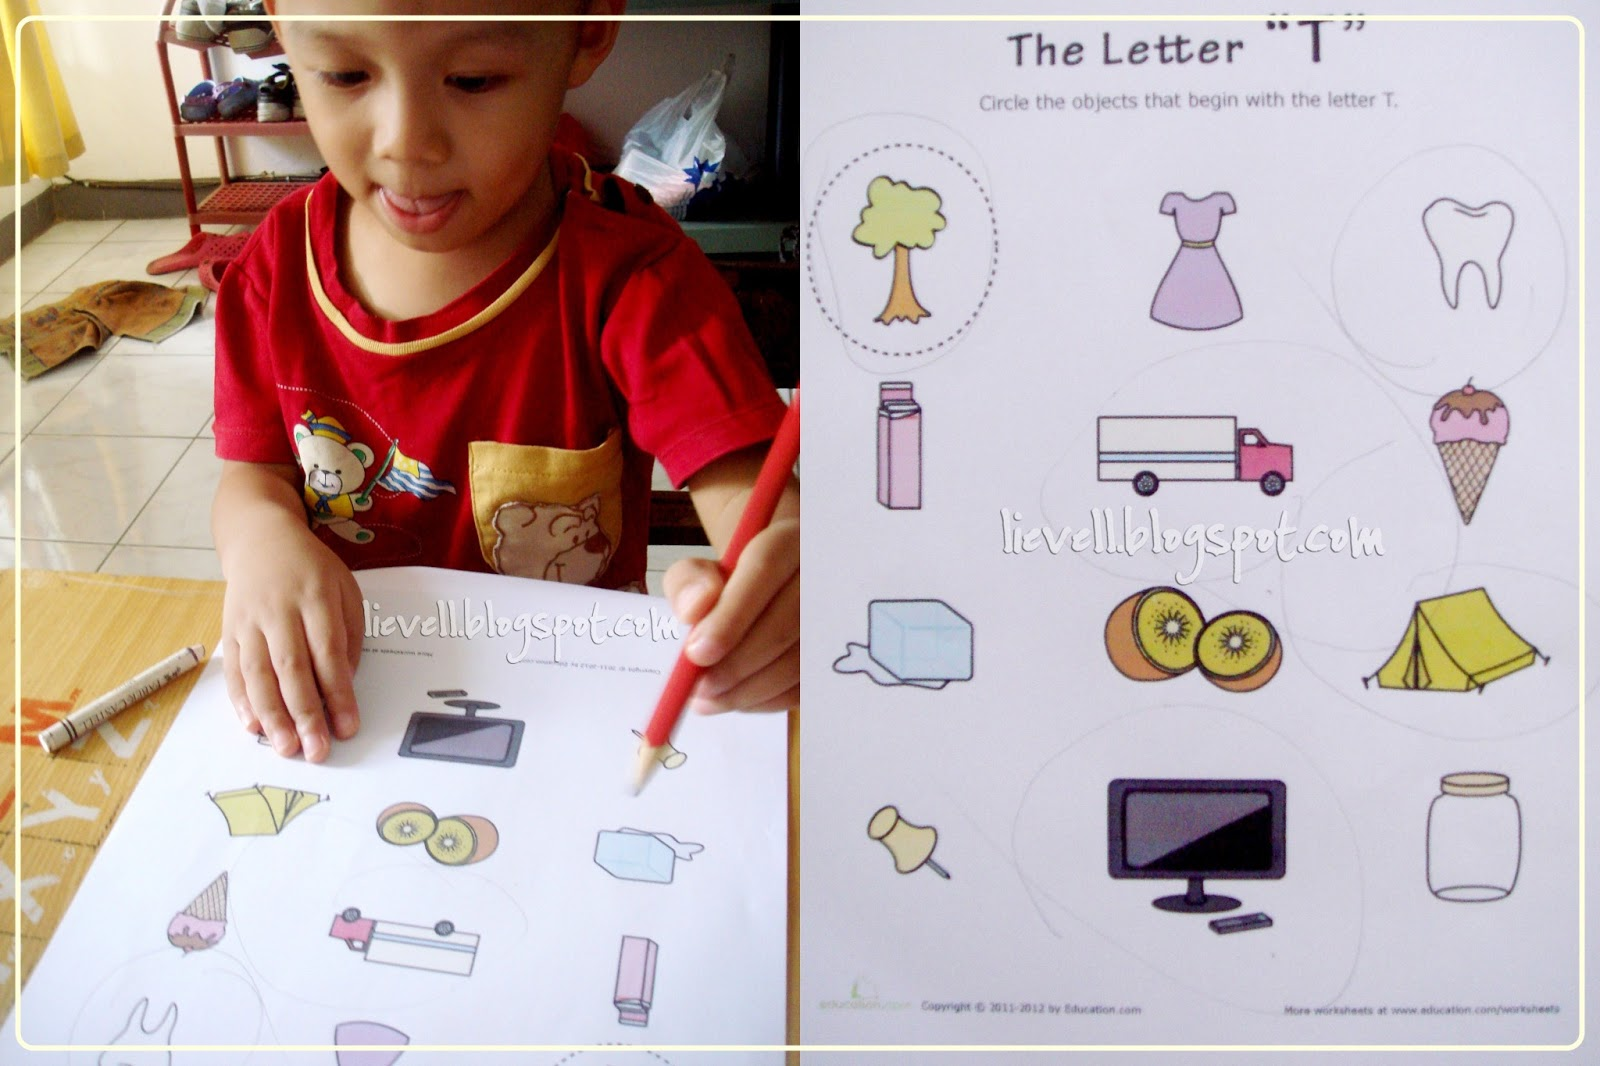 Objects Starts with Letter O http://lievell.blogspot.com/2013/01/preschool-letter-t-and-transportation.html